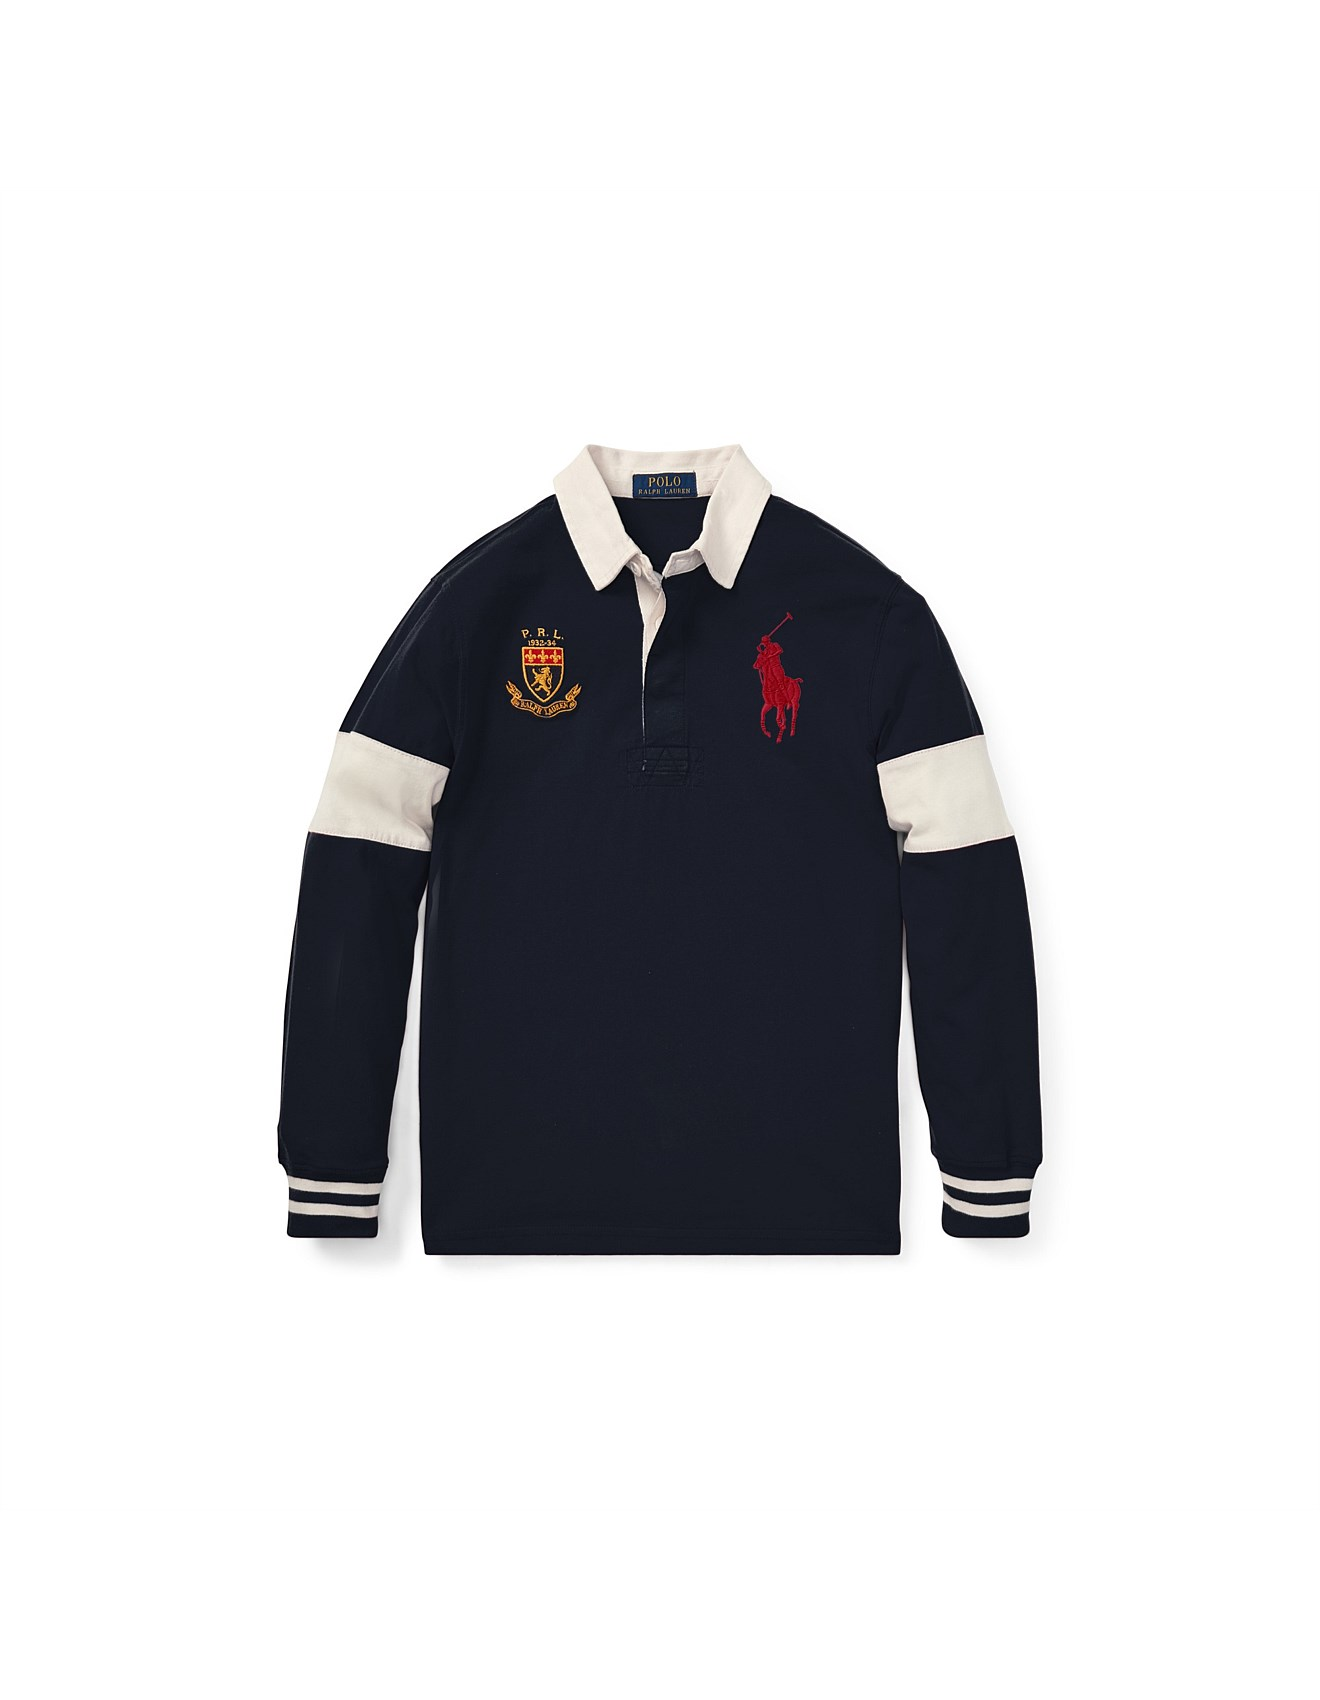 51be0ae6a79 Boys Clothing - Big Pony Cotton Jersey Rugby Top (S-XL)